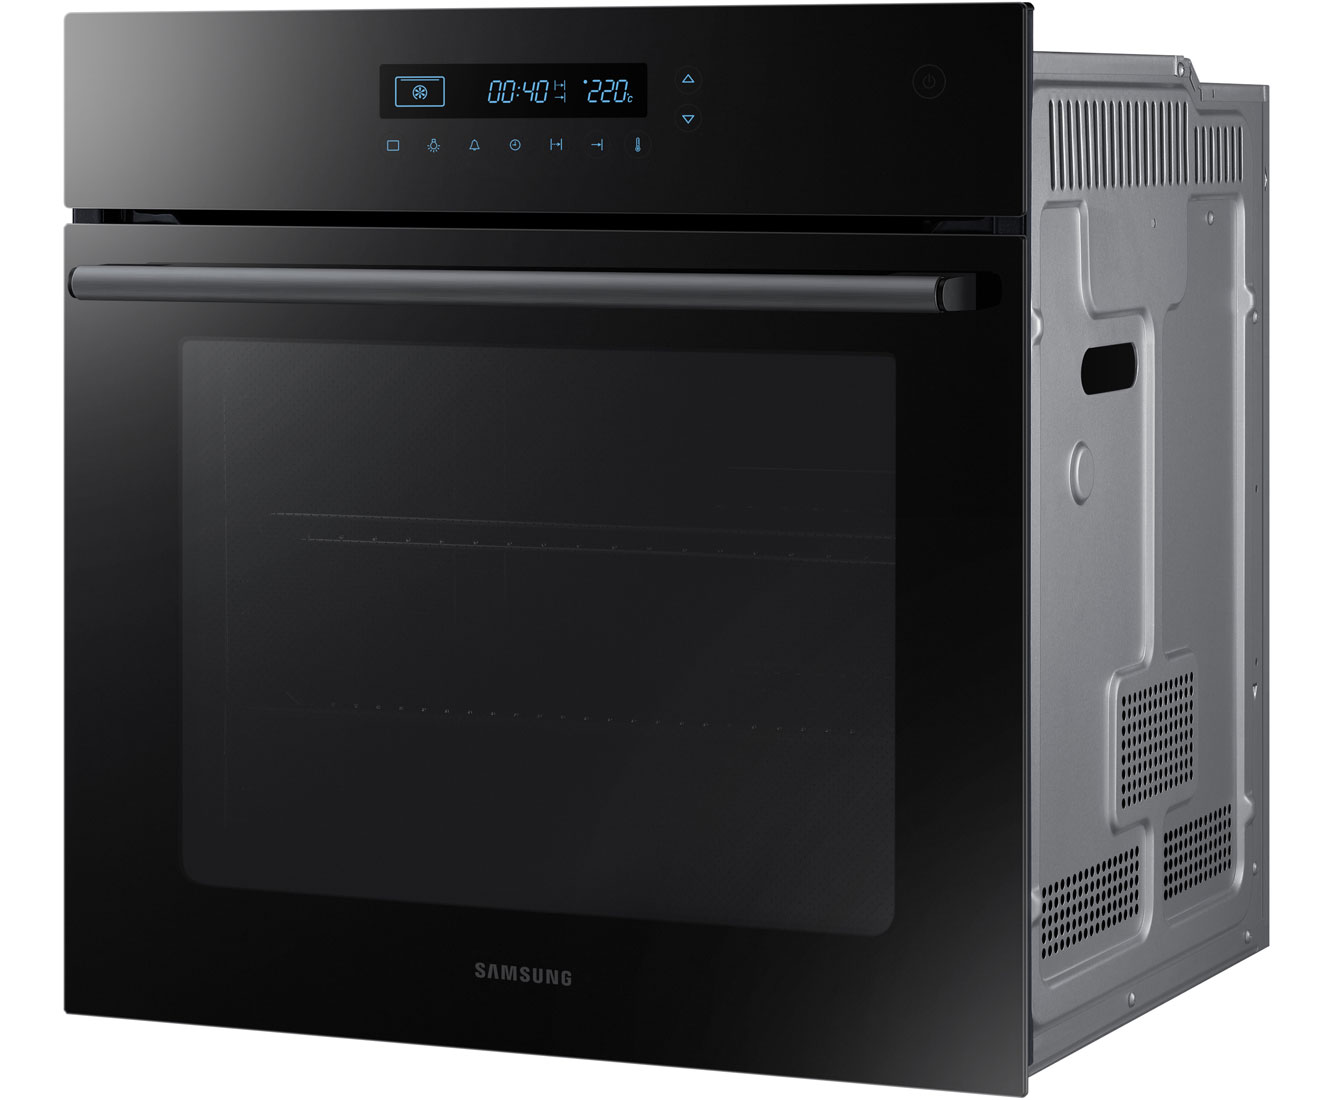 Samsung built in electric oven in black